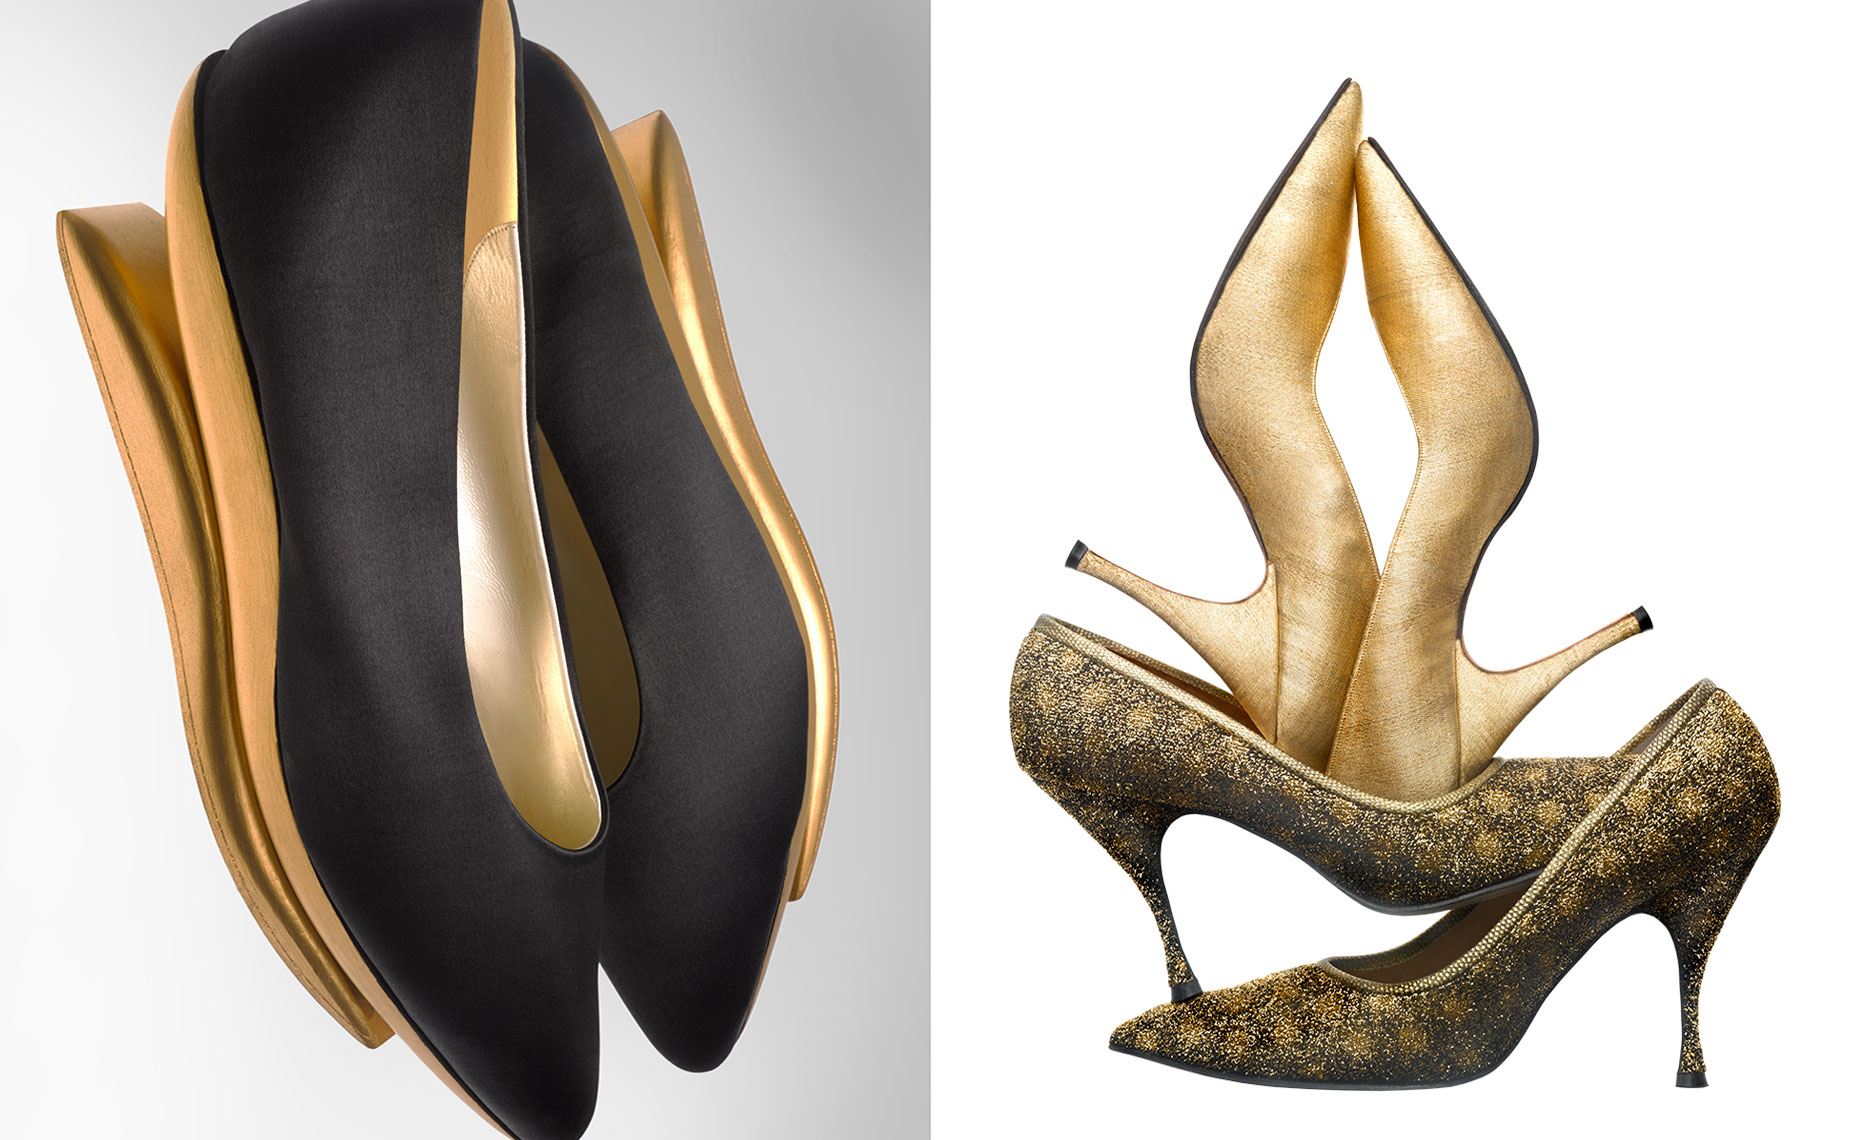 """Kabuki"" inspired shoe in black silk and gold leafed wooden soles and stilettos by Beth Levine"